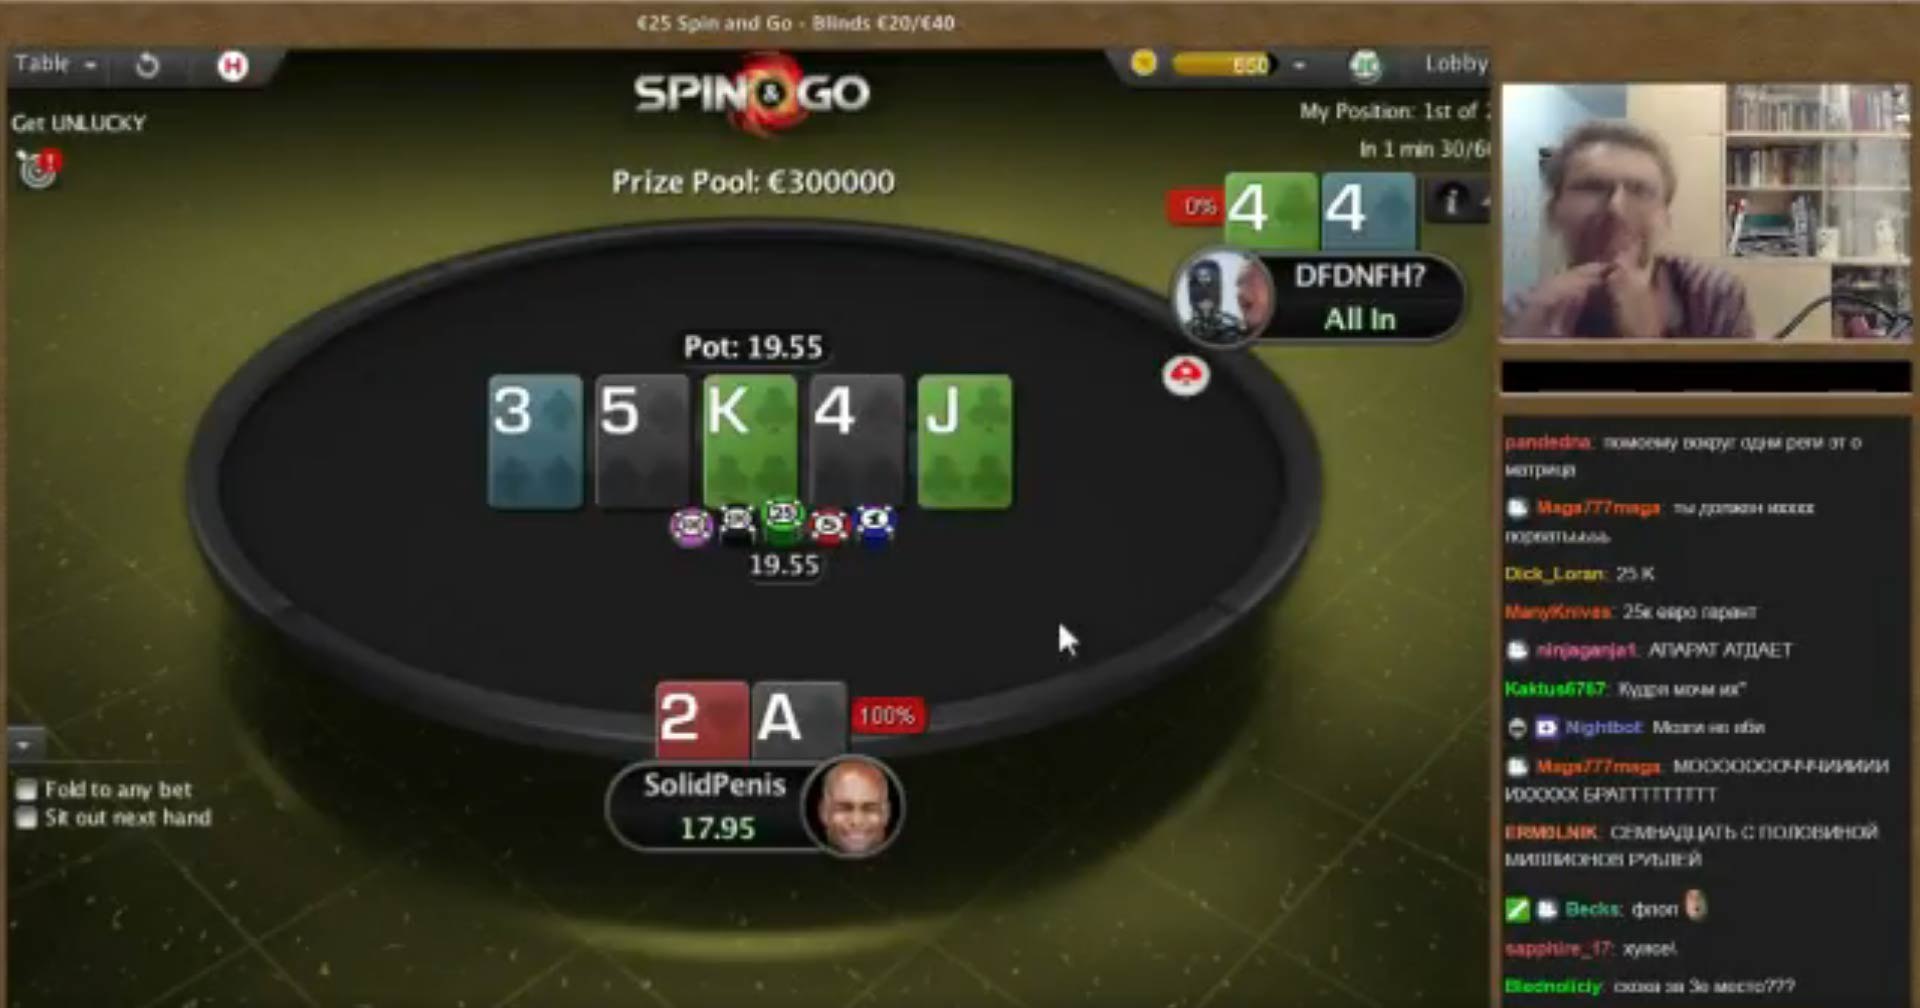 twitch spin and go